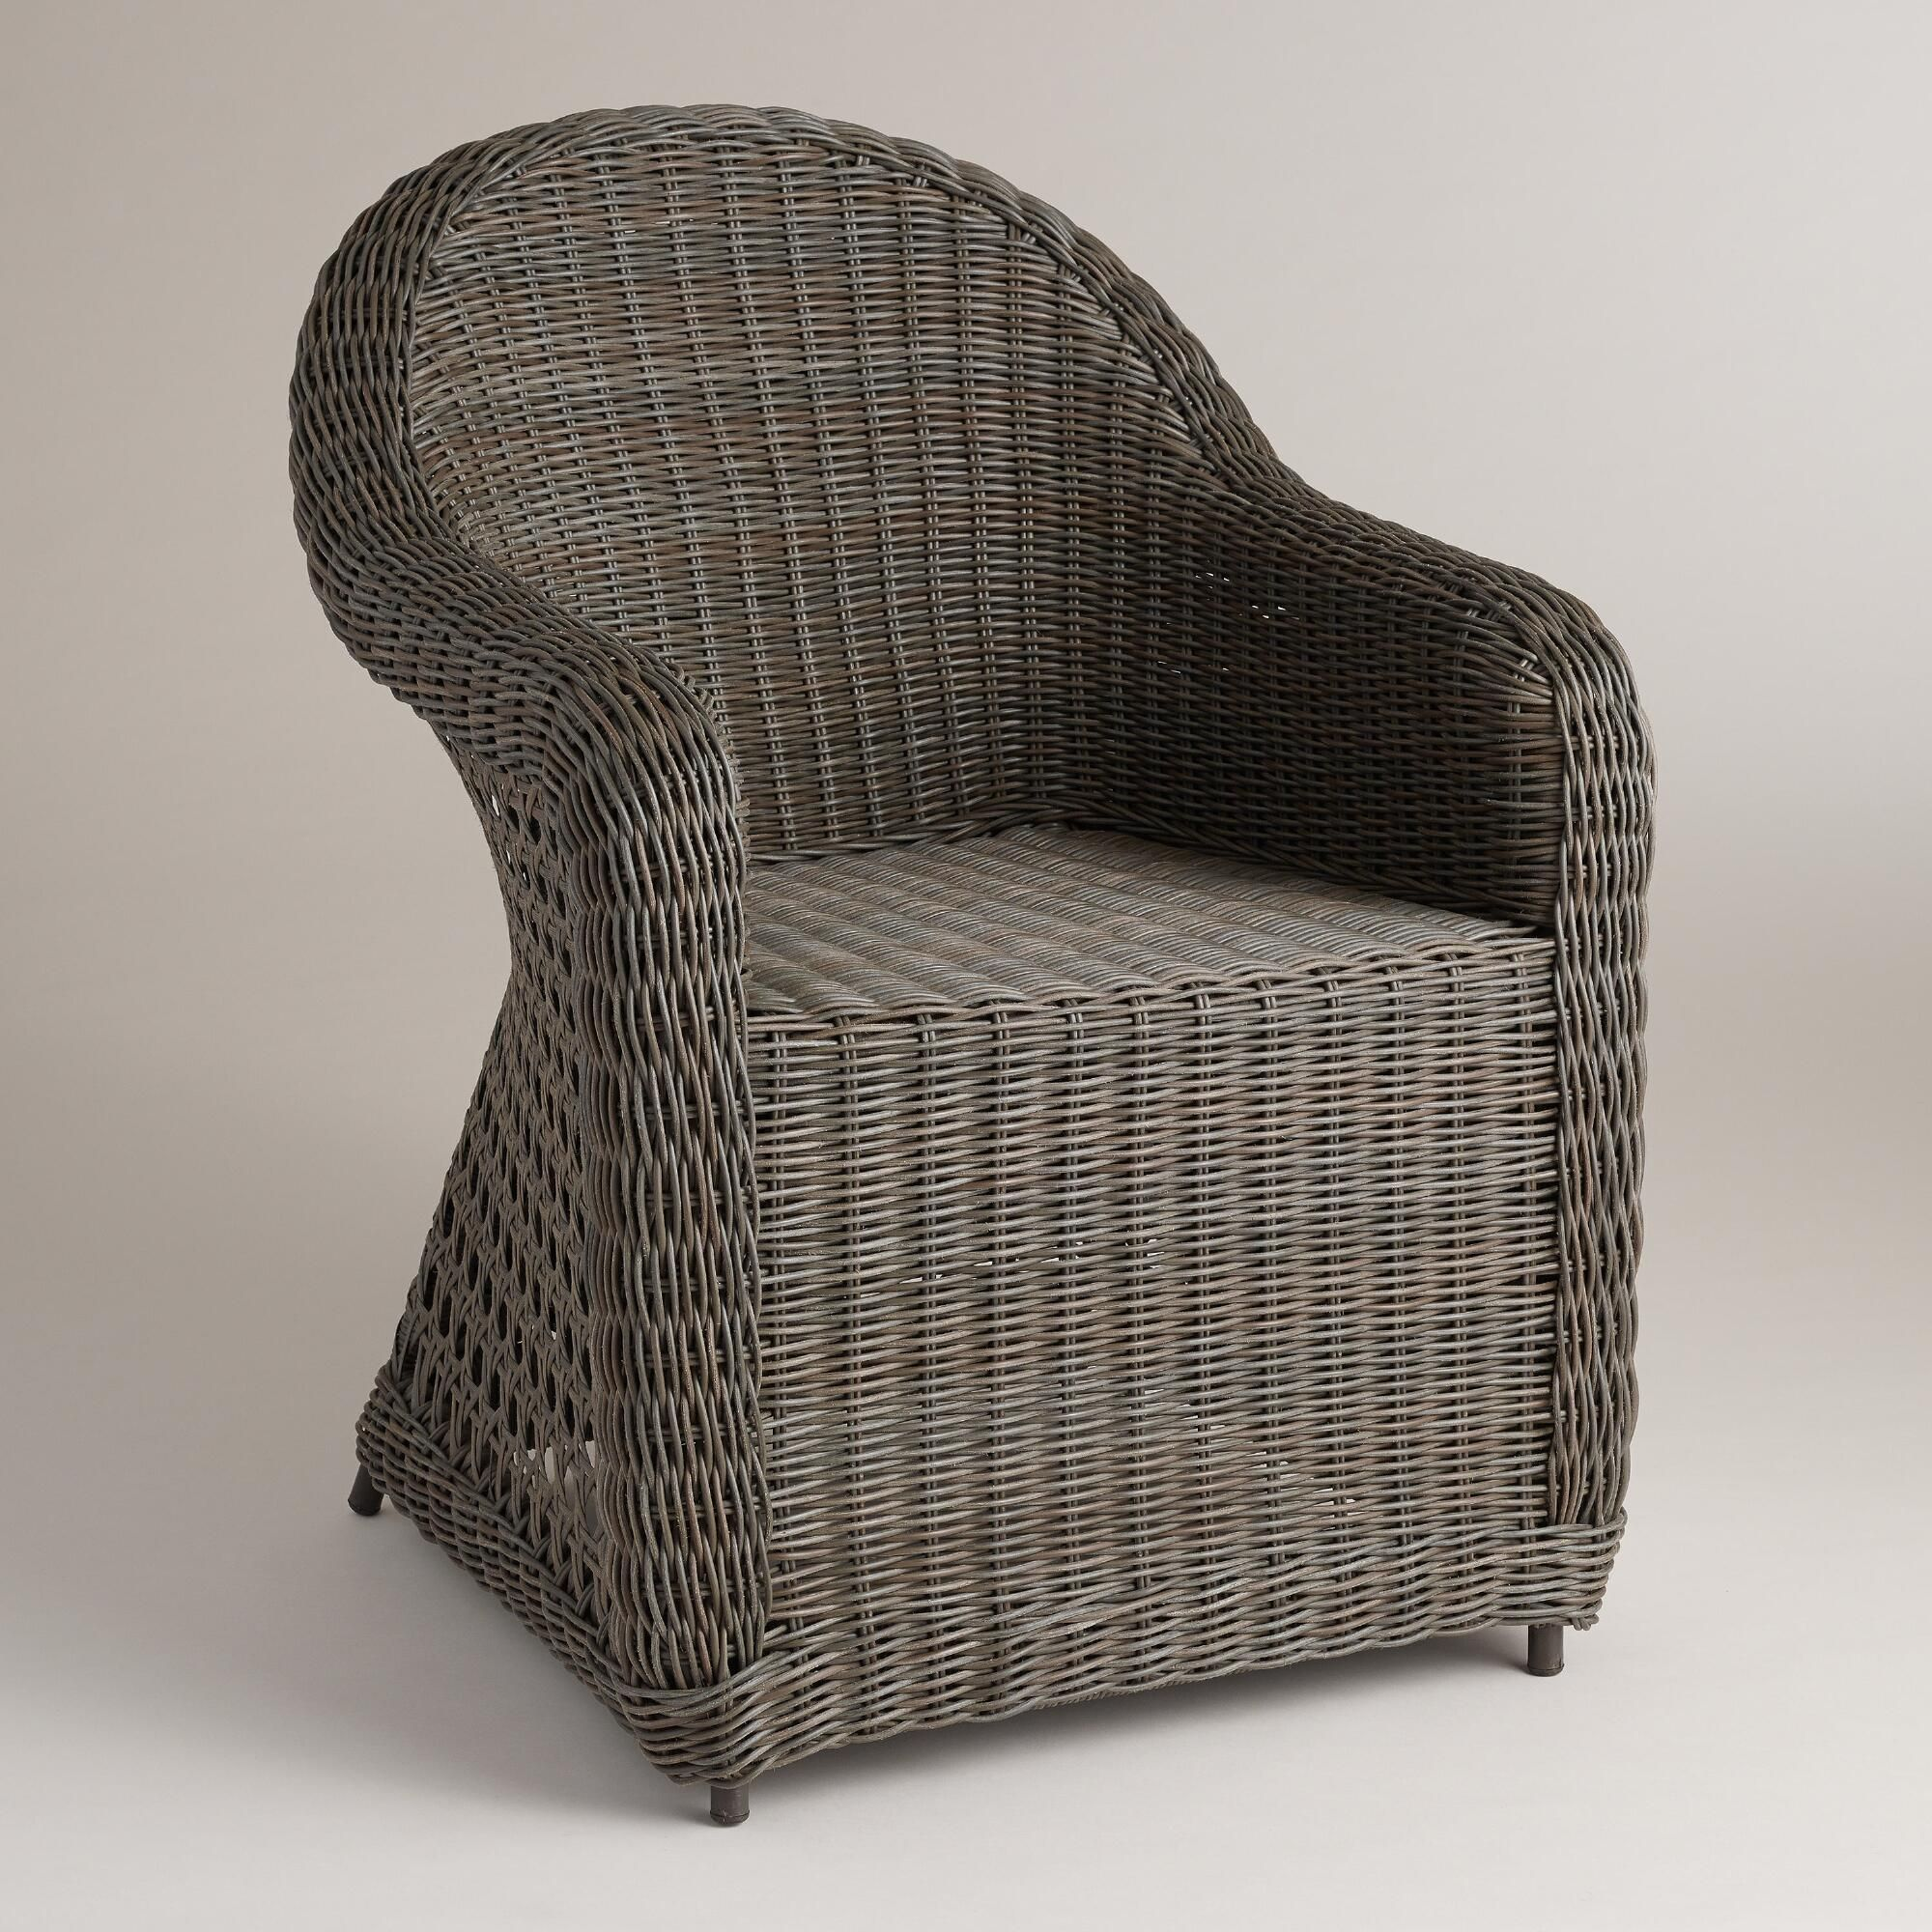 Comfortable Wicker Chairs Workpro Commercial Mesh Back Executive Chair Finished In Distressed Gray For A Natural Look